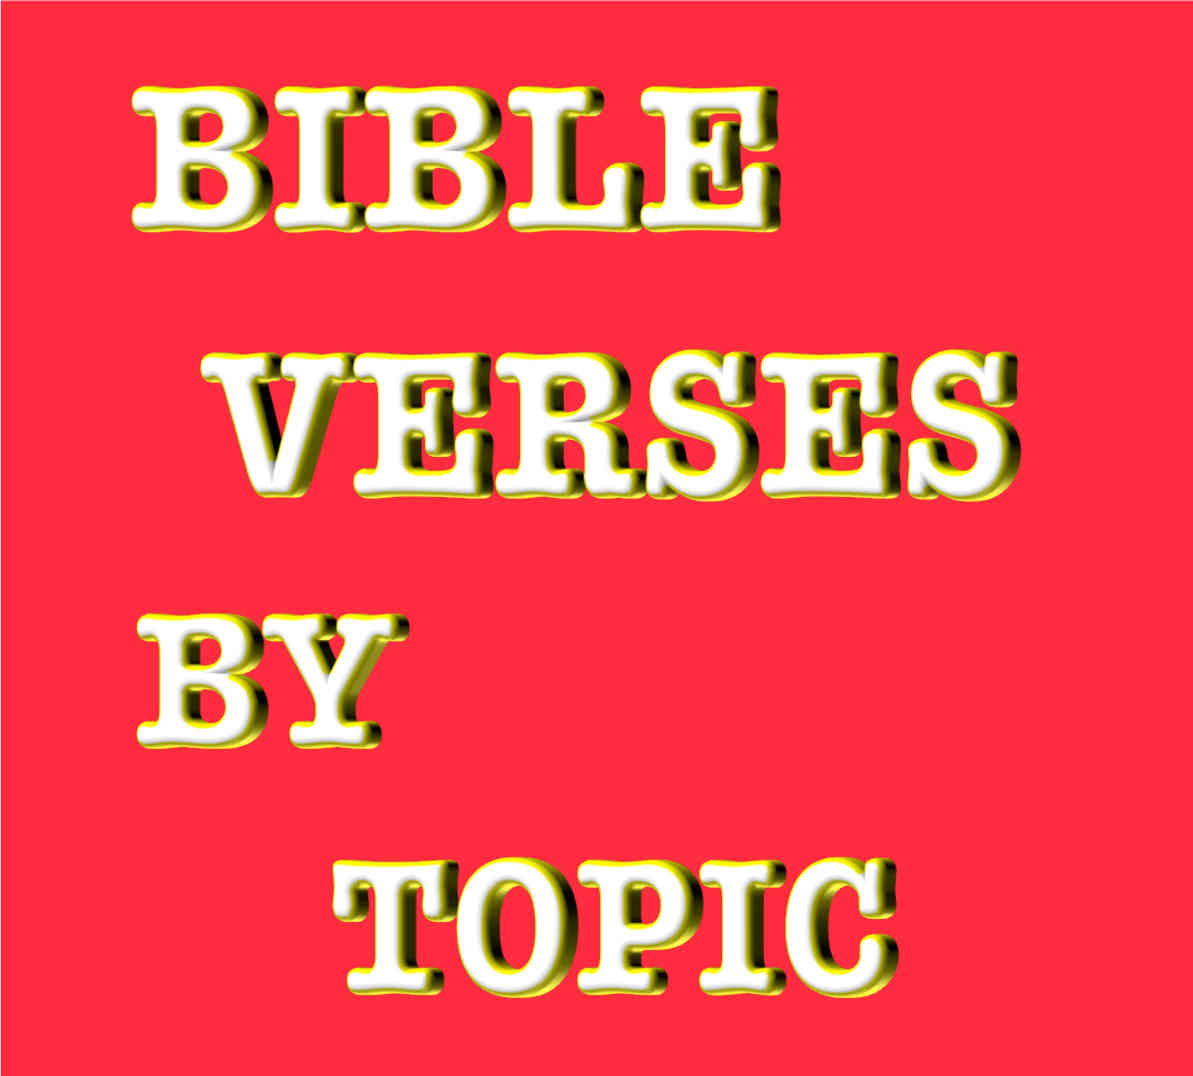 Bible verses by topic inspirational scriptures by subject bible verses by topic negle Images